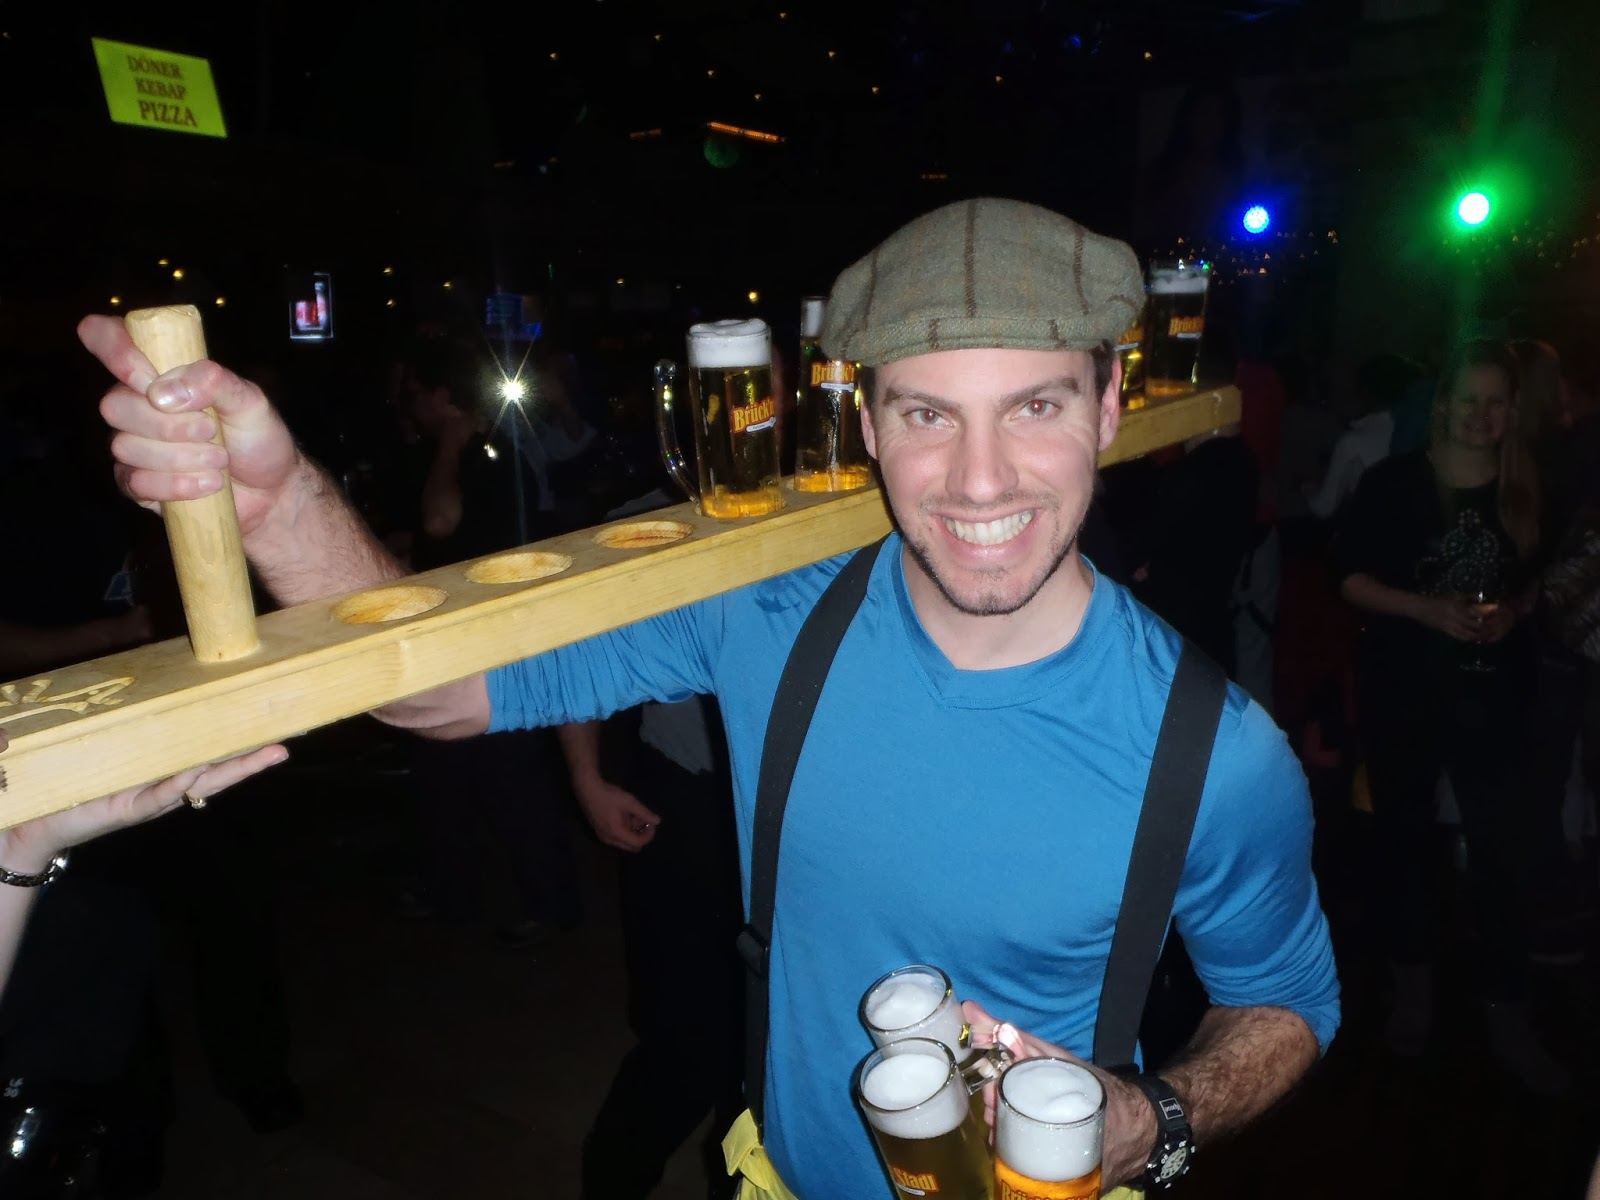 Simon with a metre of beer - Bruck N' Stadl, Mayrhofen